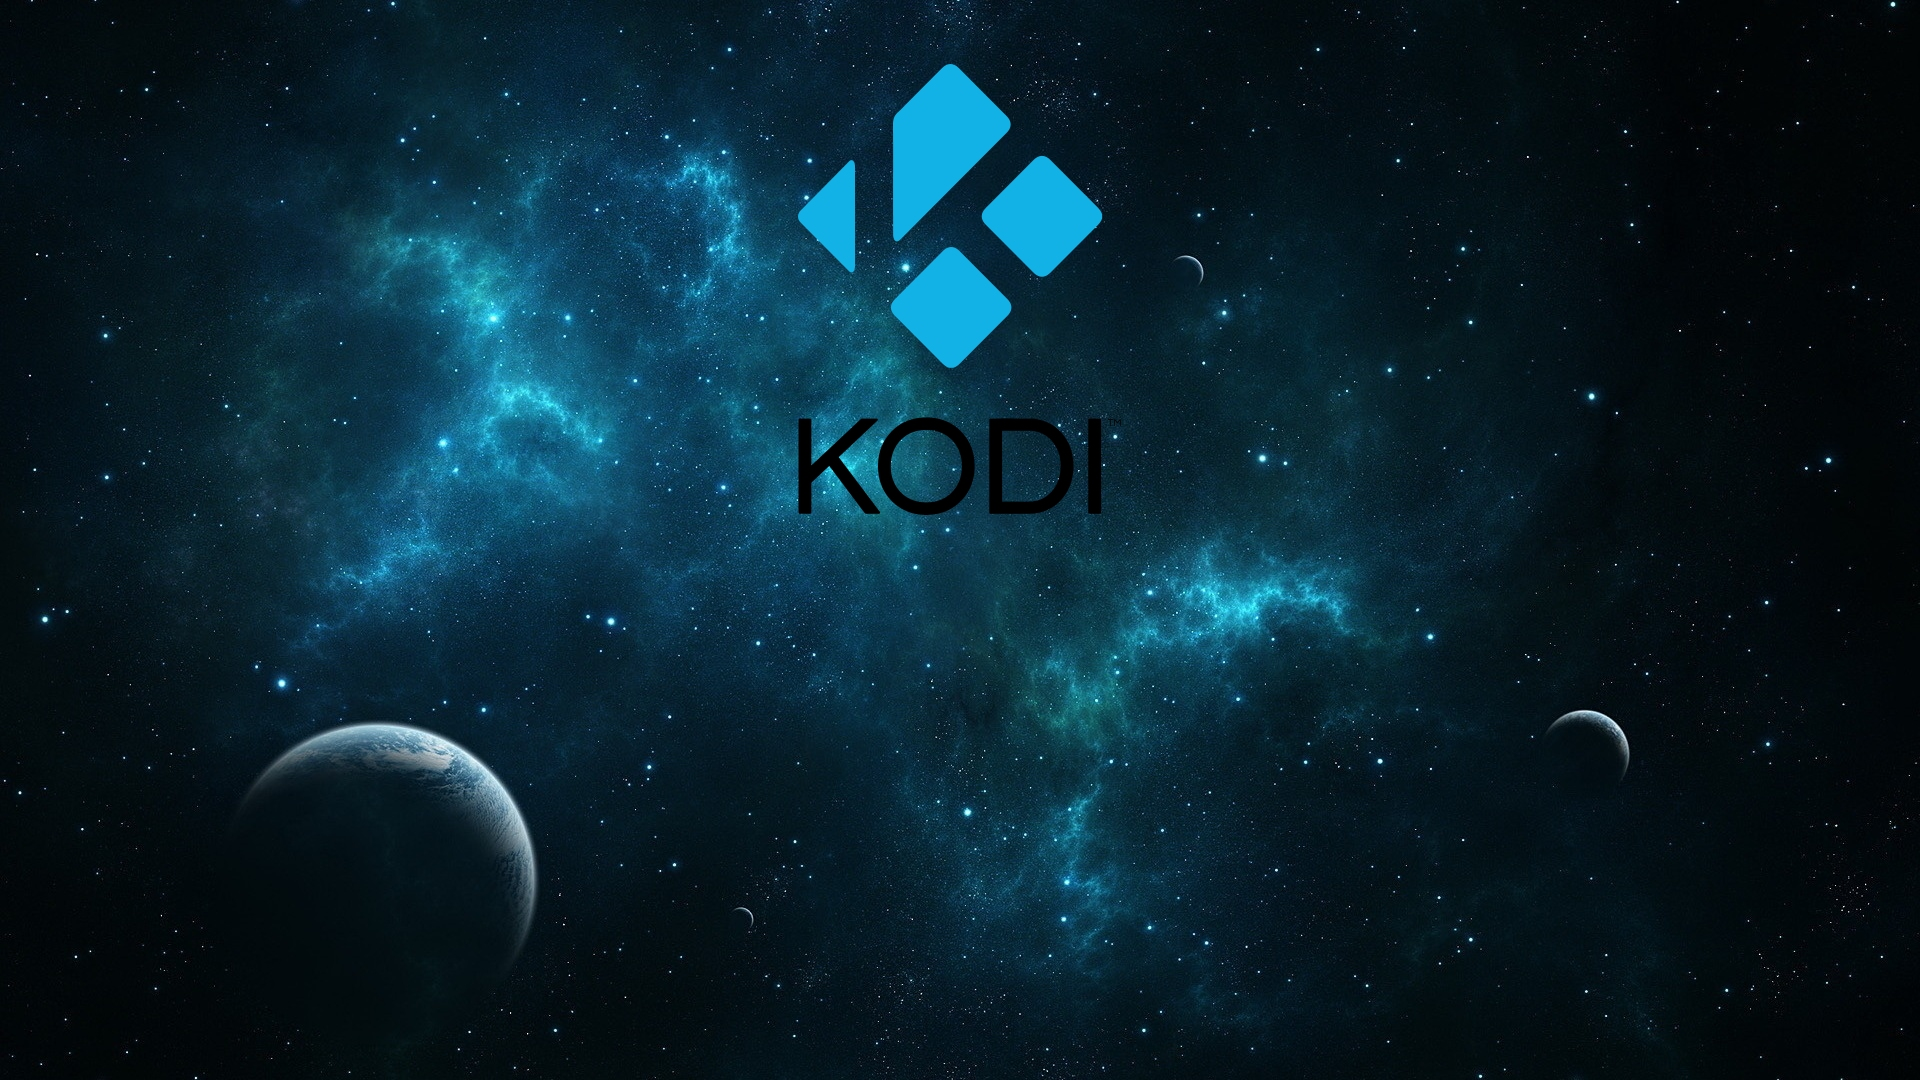 Wallpaper download kodi - My Wallpapers But Wow You Guys Are Good Here S My Wallpaper Anyway